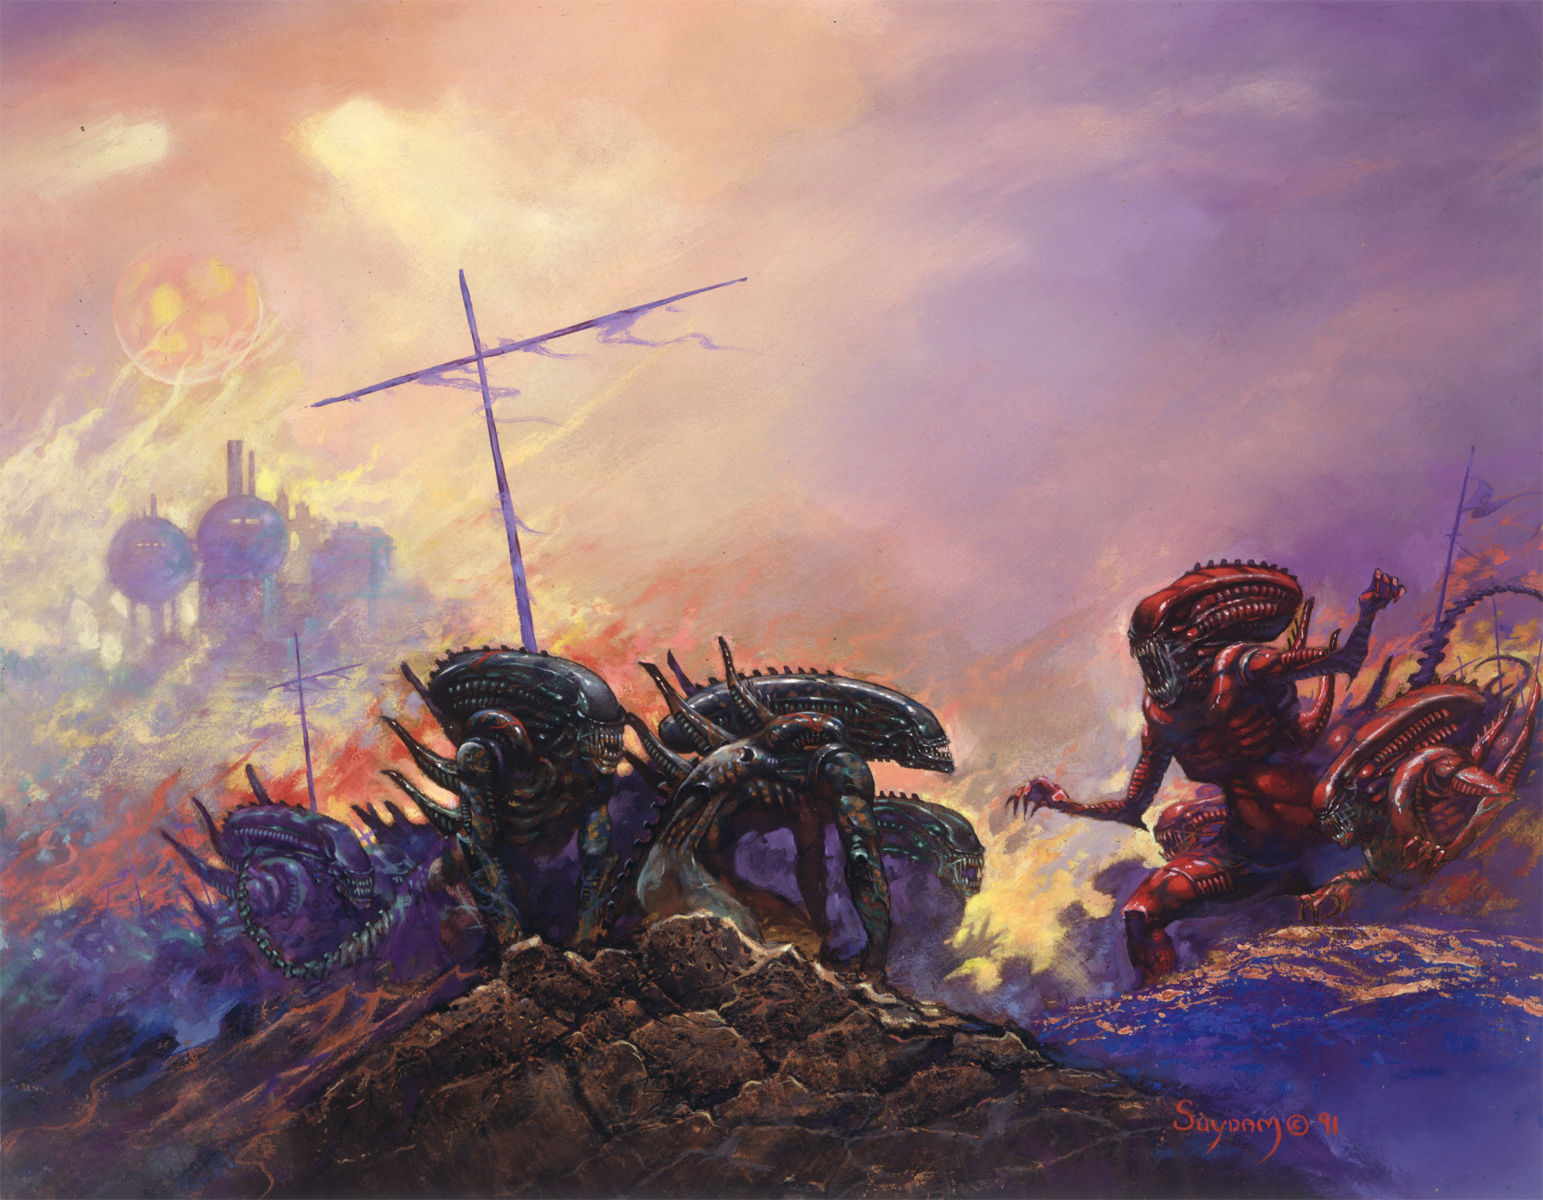 ARTHUR SUYDAM, ALIEN  print, Red vs Black Aliens, Terror, Horror, 11